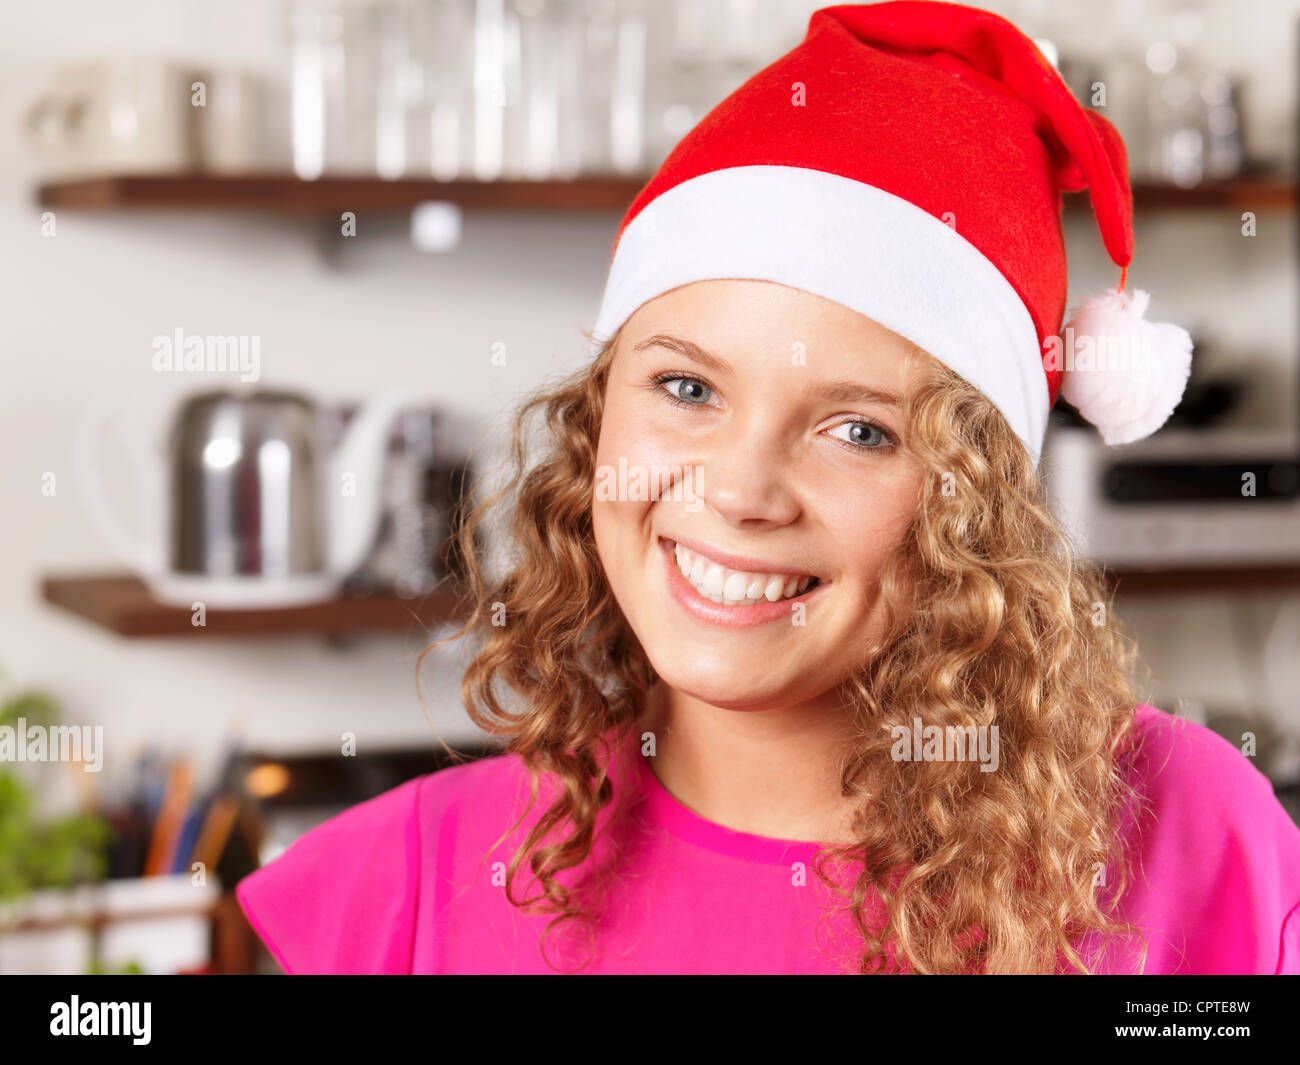 Portrait of young woman wearing Santa hat, smiling - Stock Image